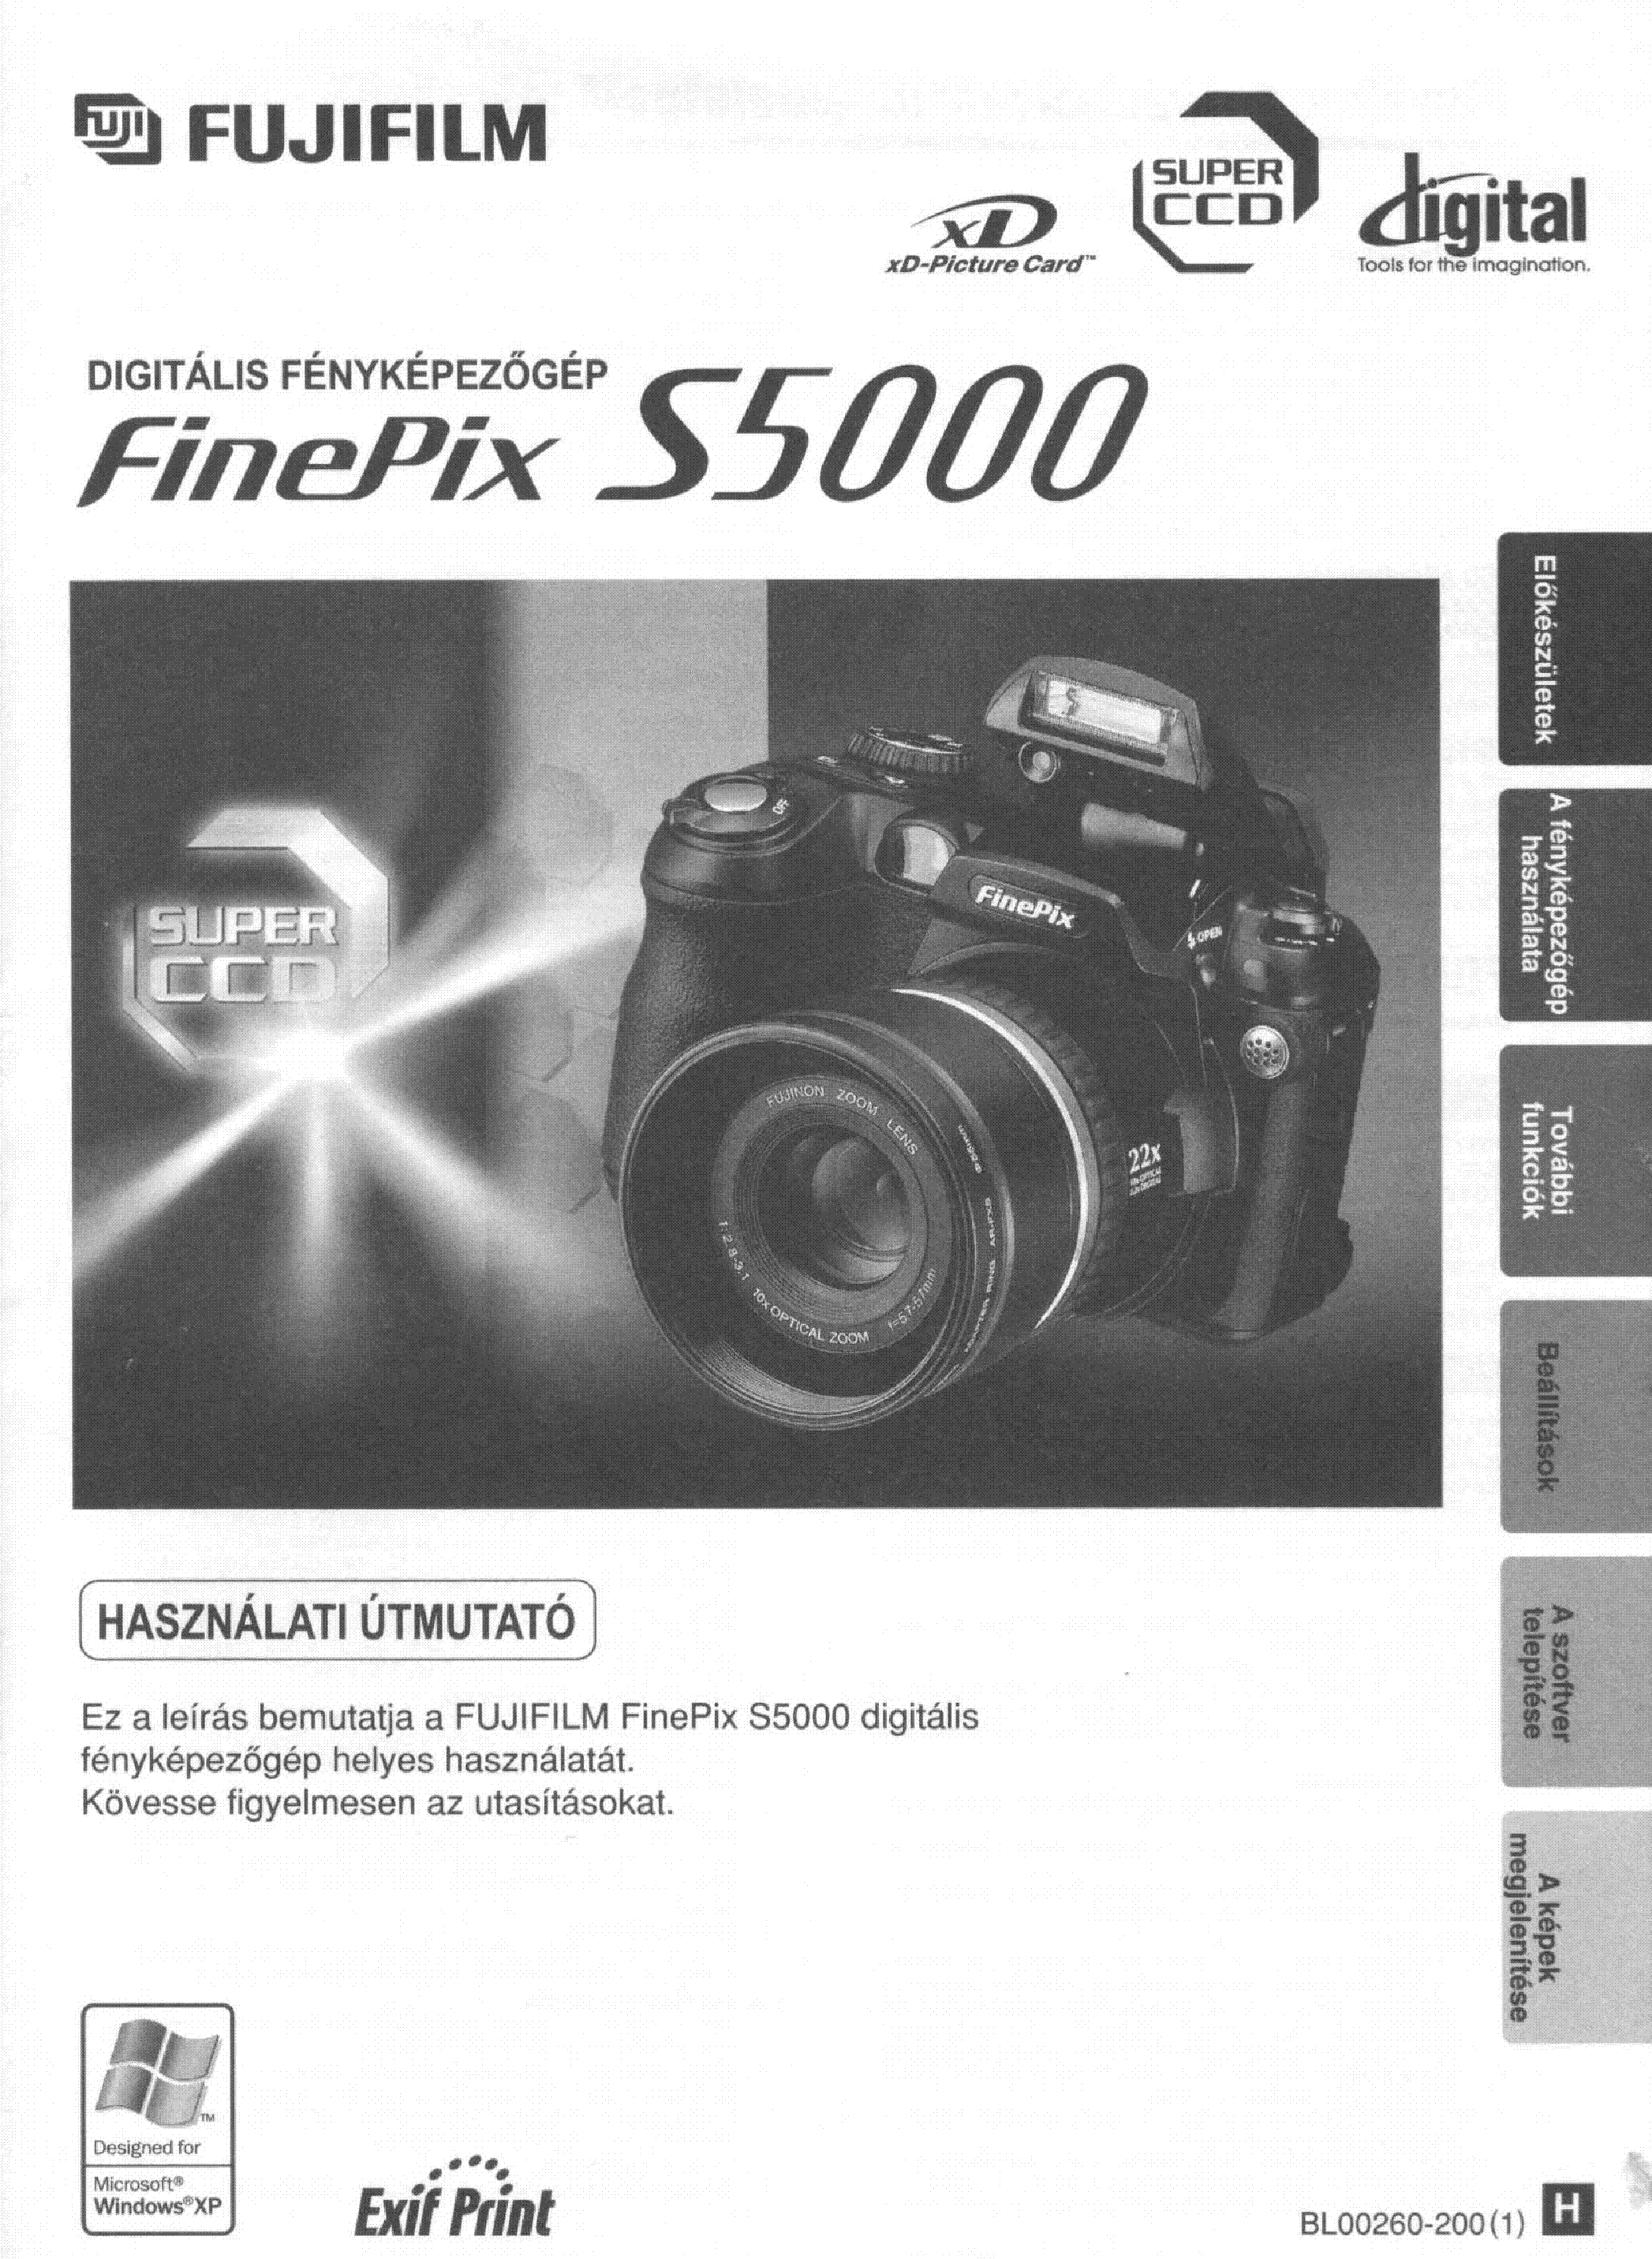 FUJIFILM FUJIFILM FINEPIX S5000 USER MANUAL service manual